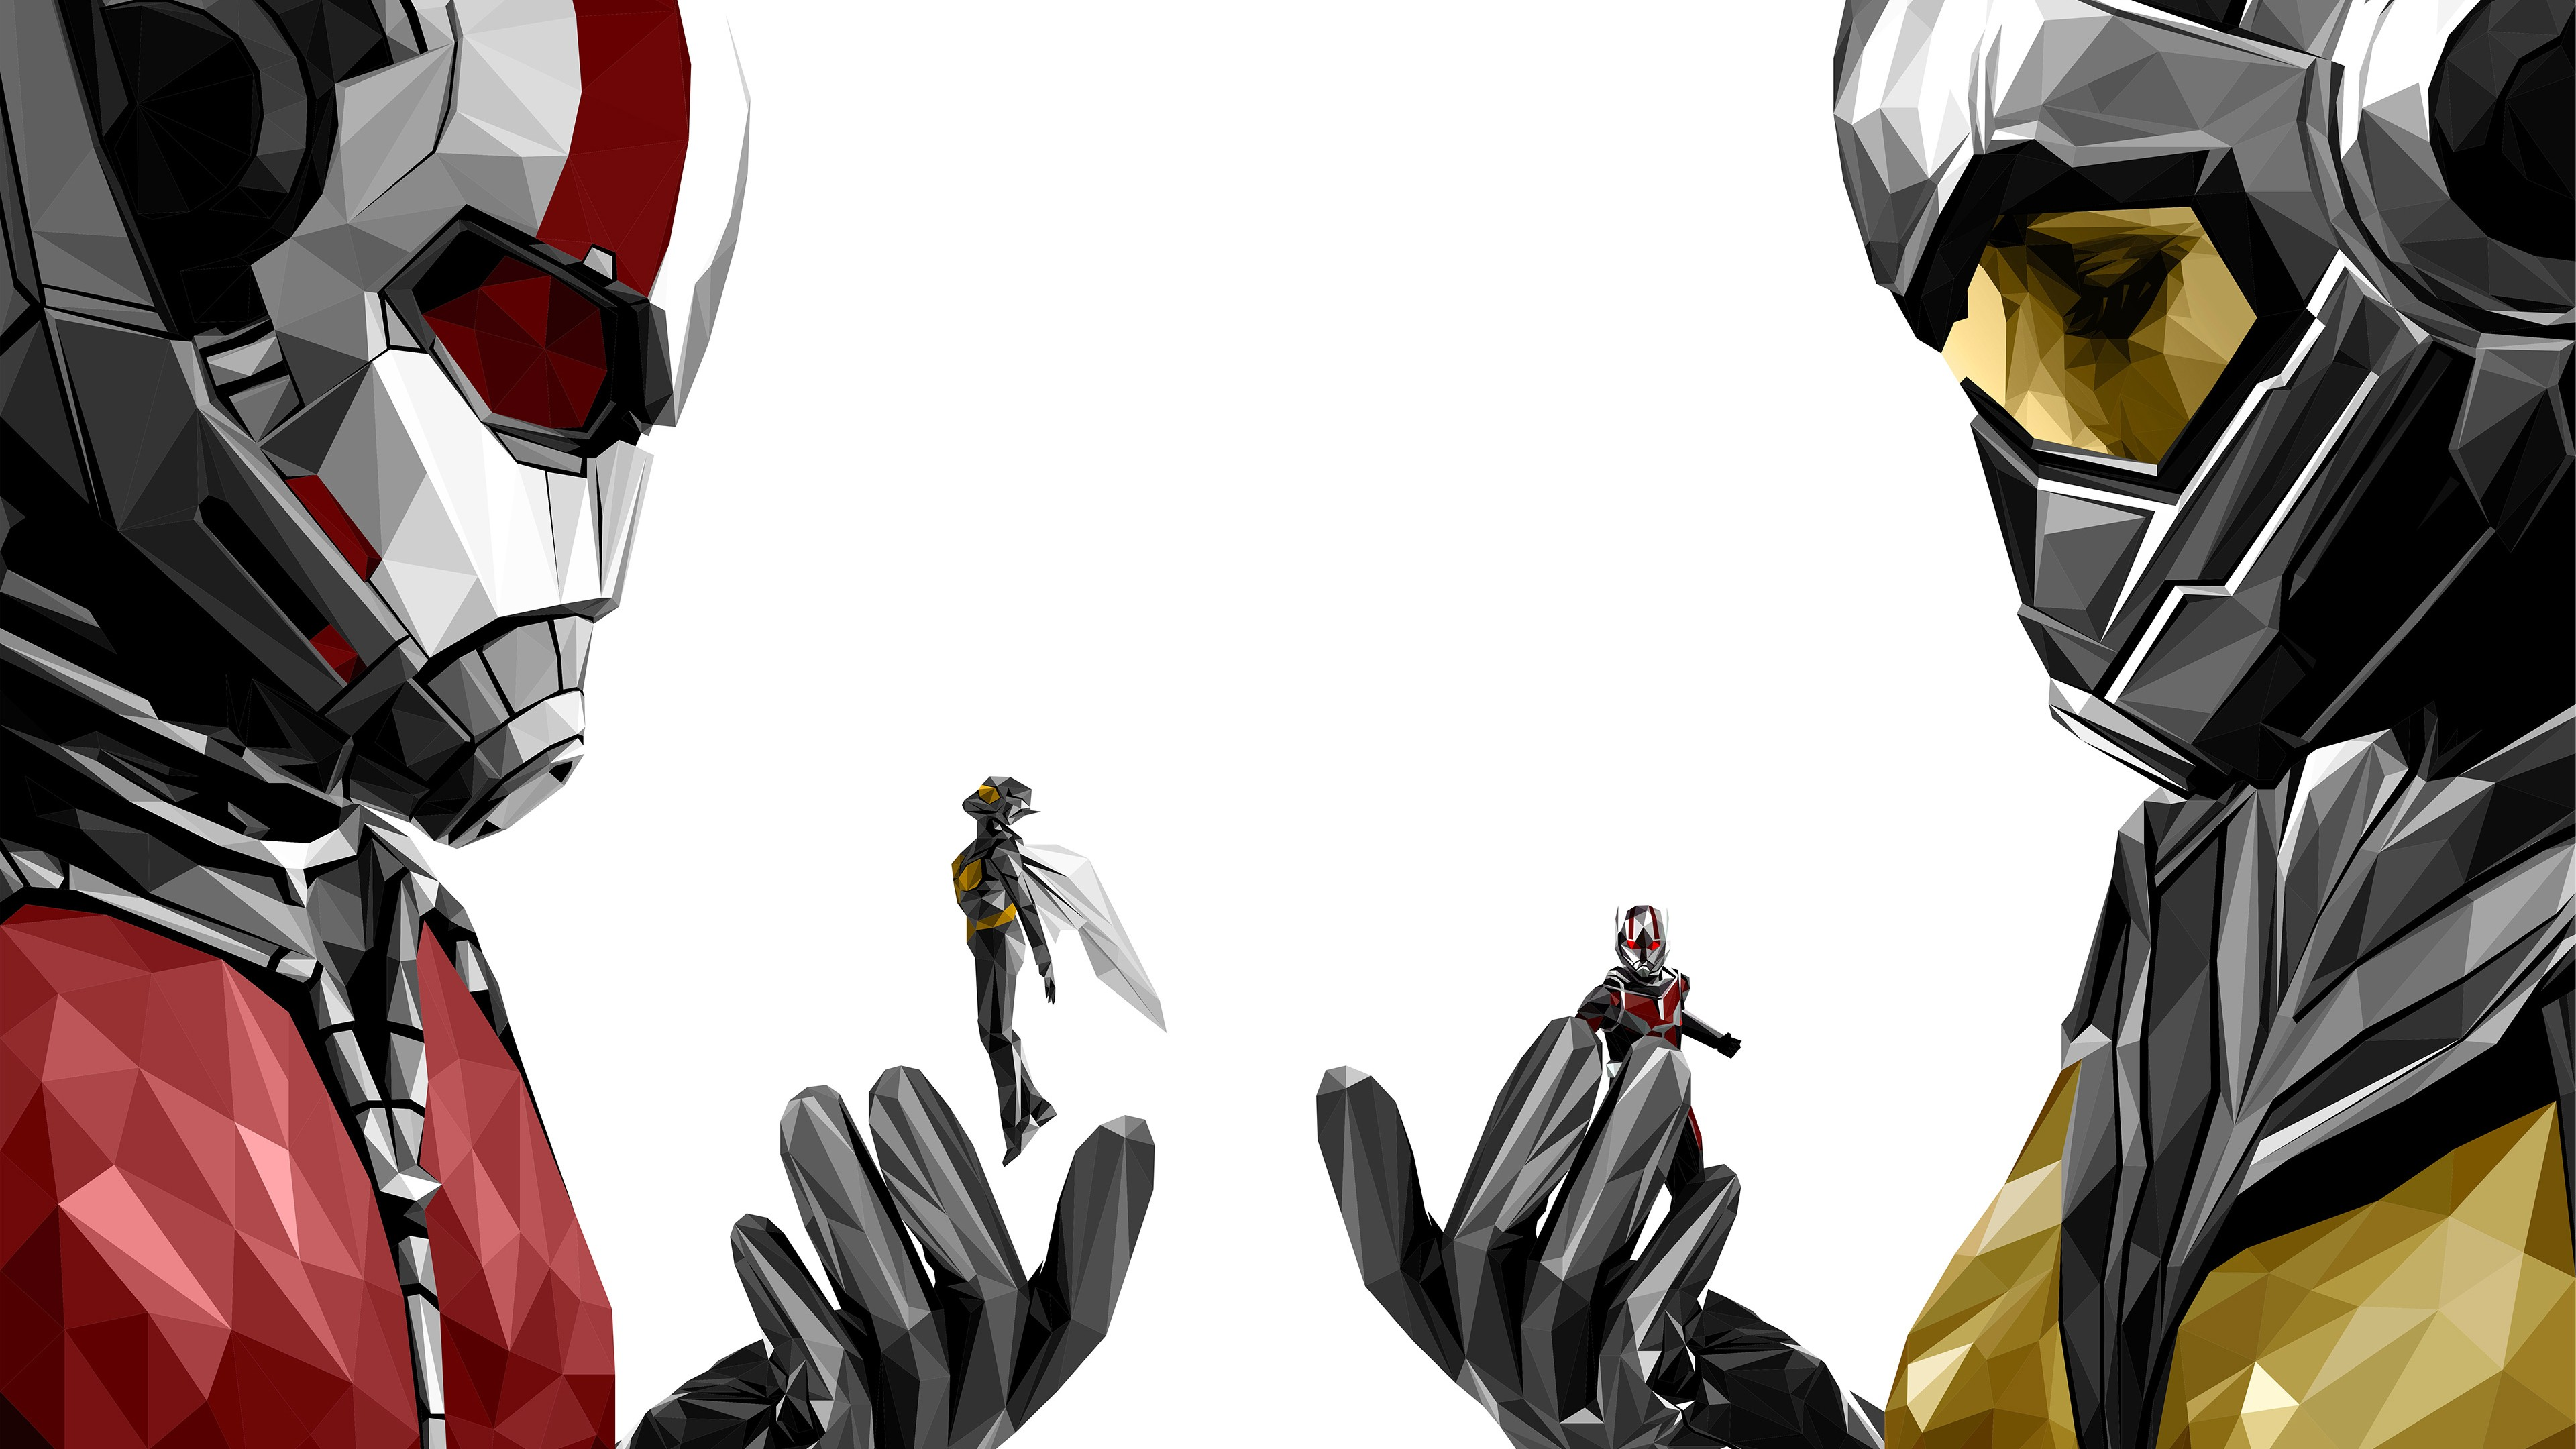 Wallpaper Ant Man And The Wasp Artwork 4k Art 19689 Page 4